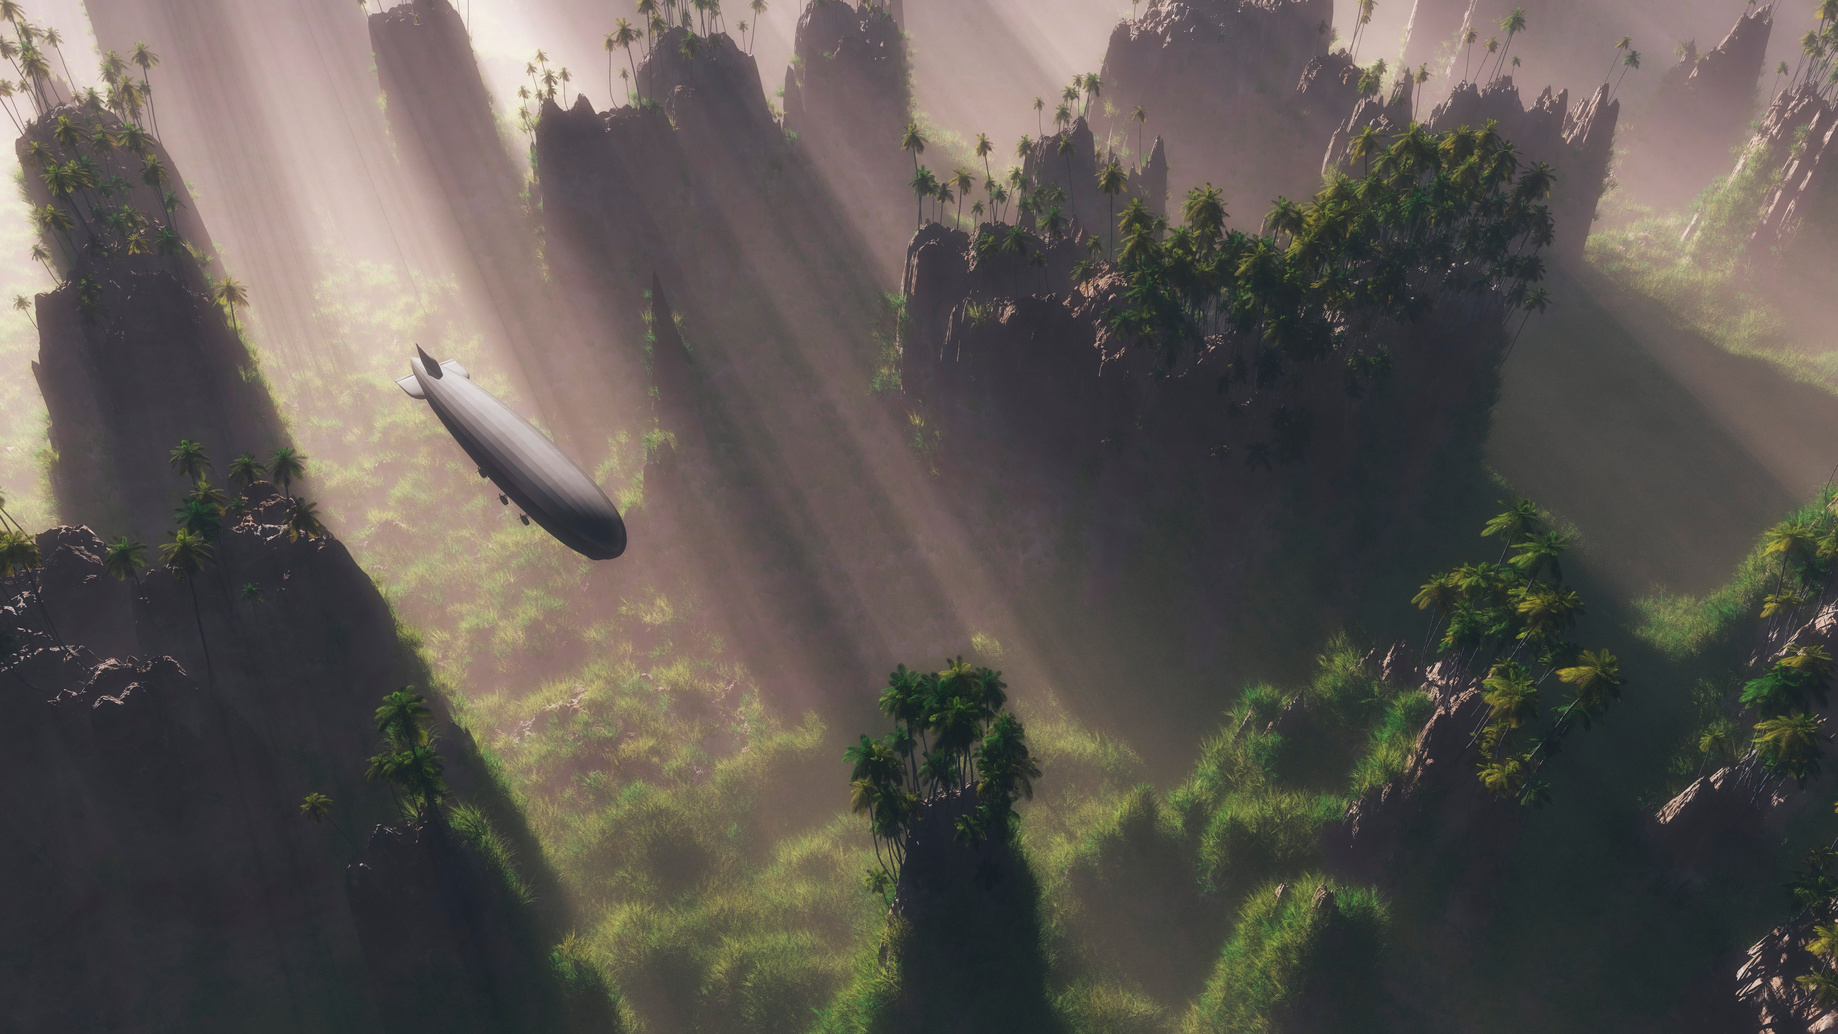 Airship flying over tropical mountain range with grass and palm trees at sunrise